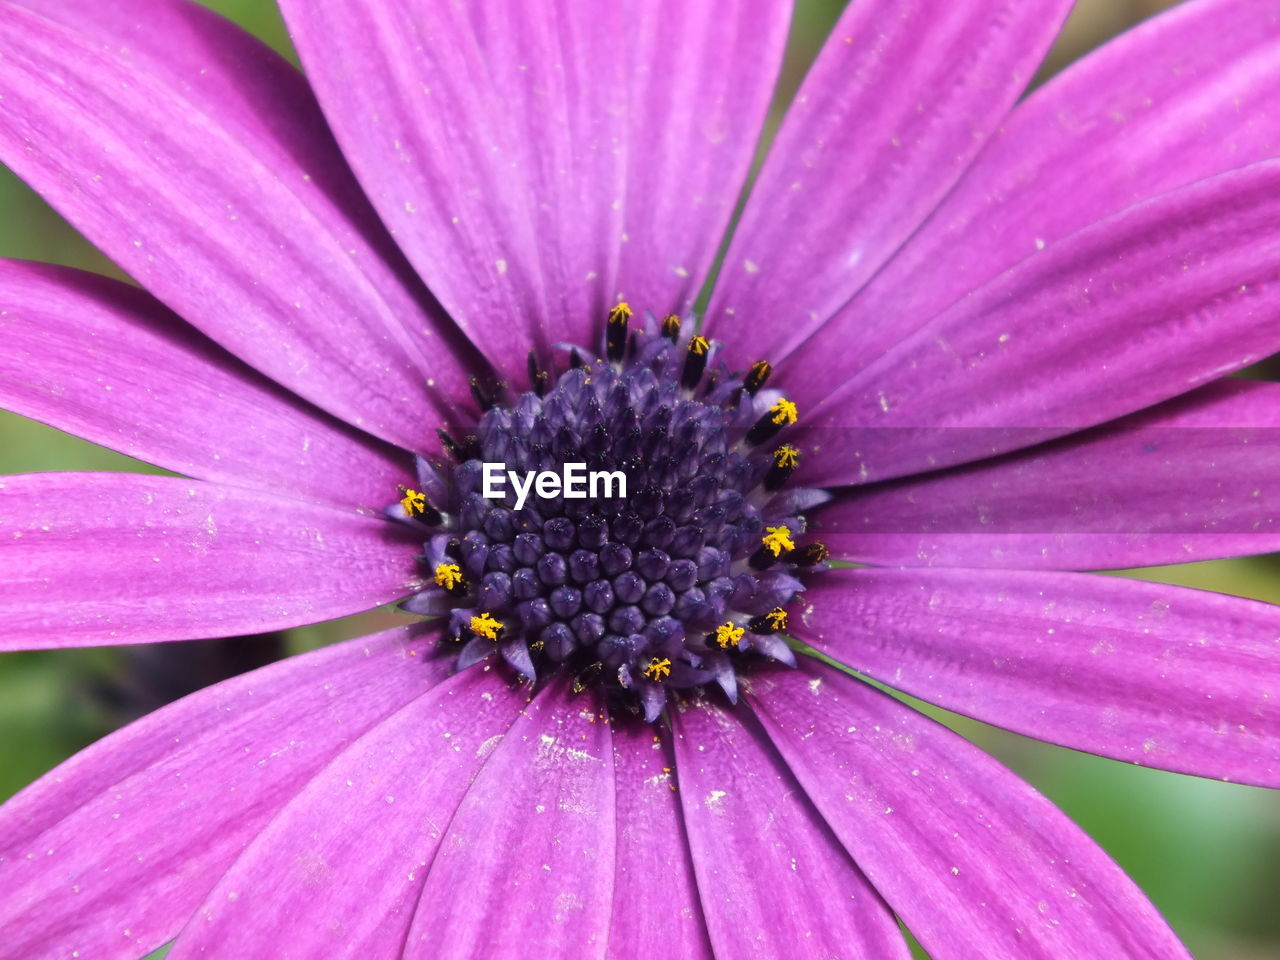 flower, petal, fragility, beauty in nature, flower head, pollen, nature, freshness, growth, close-up, day, blooming, outdoors, pink color, no people, full frame, backgrounds, plant, osteospermum